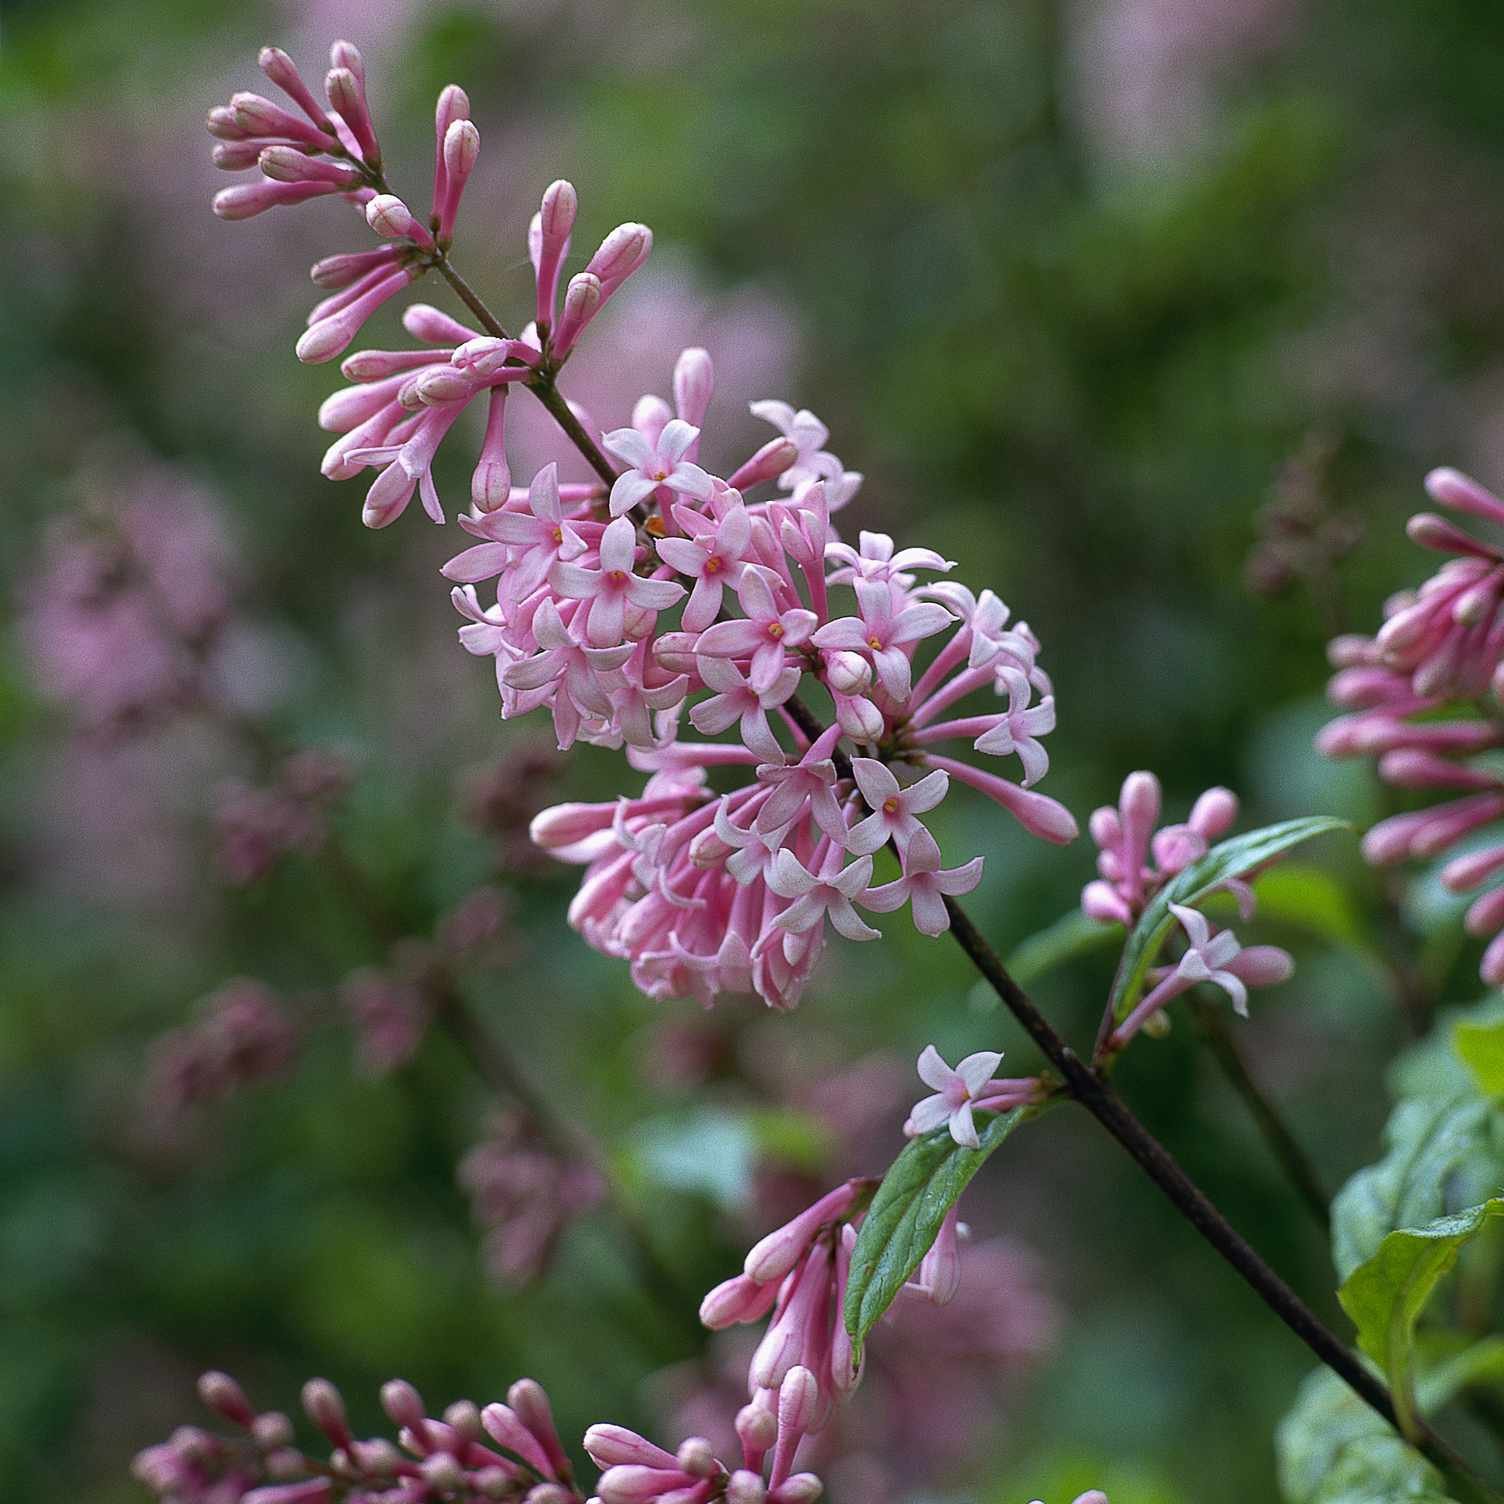 The Superba lilac with pink flowers